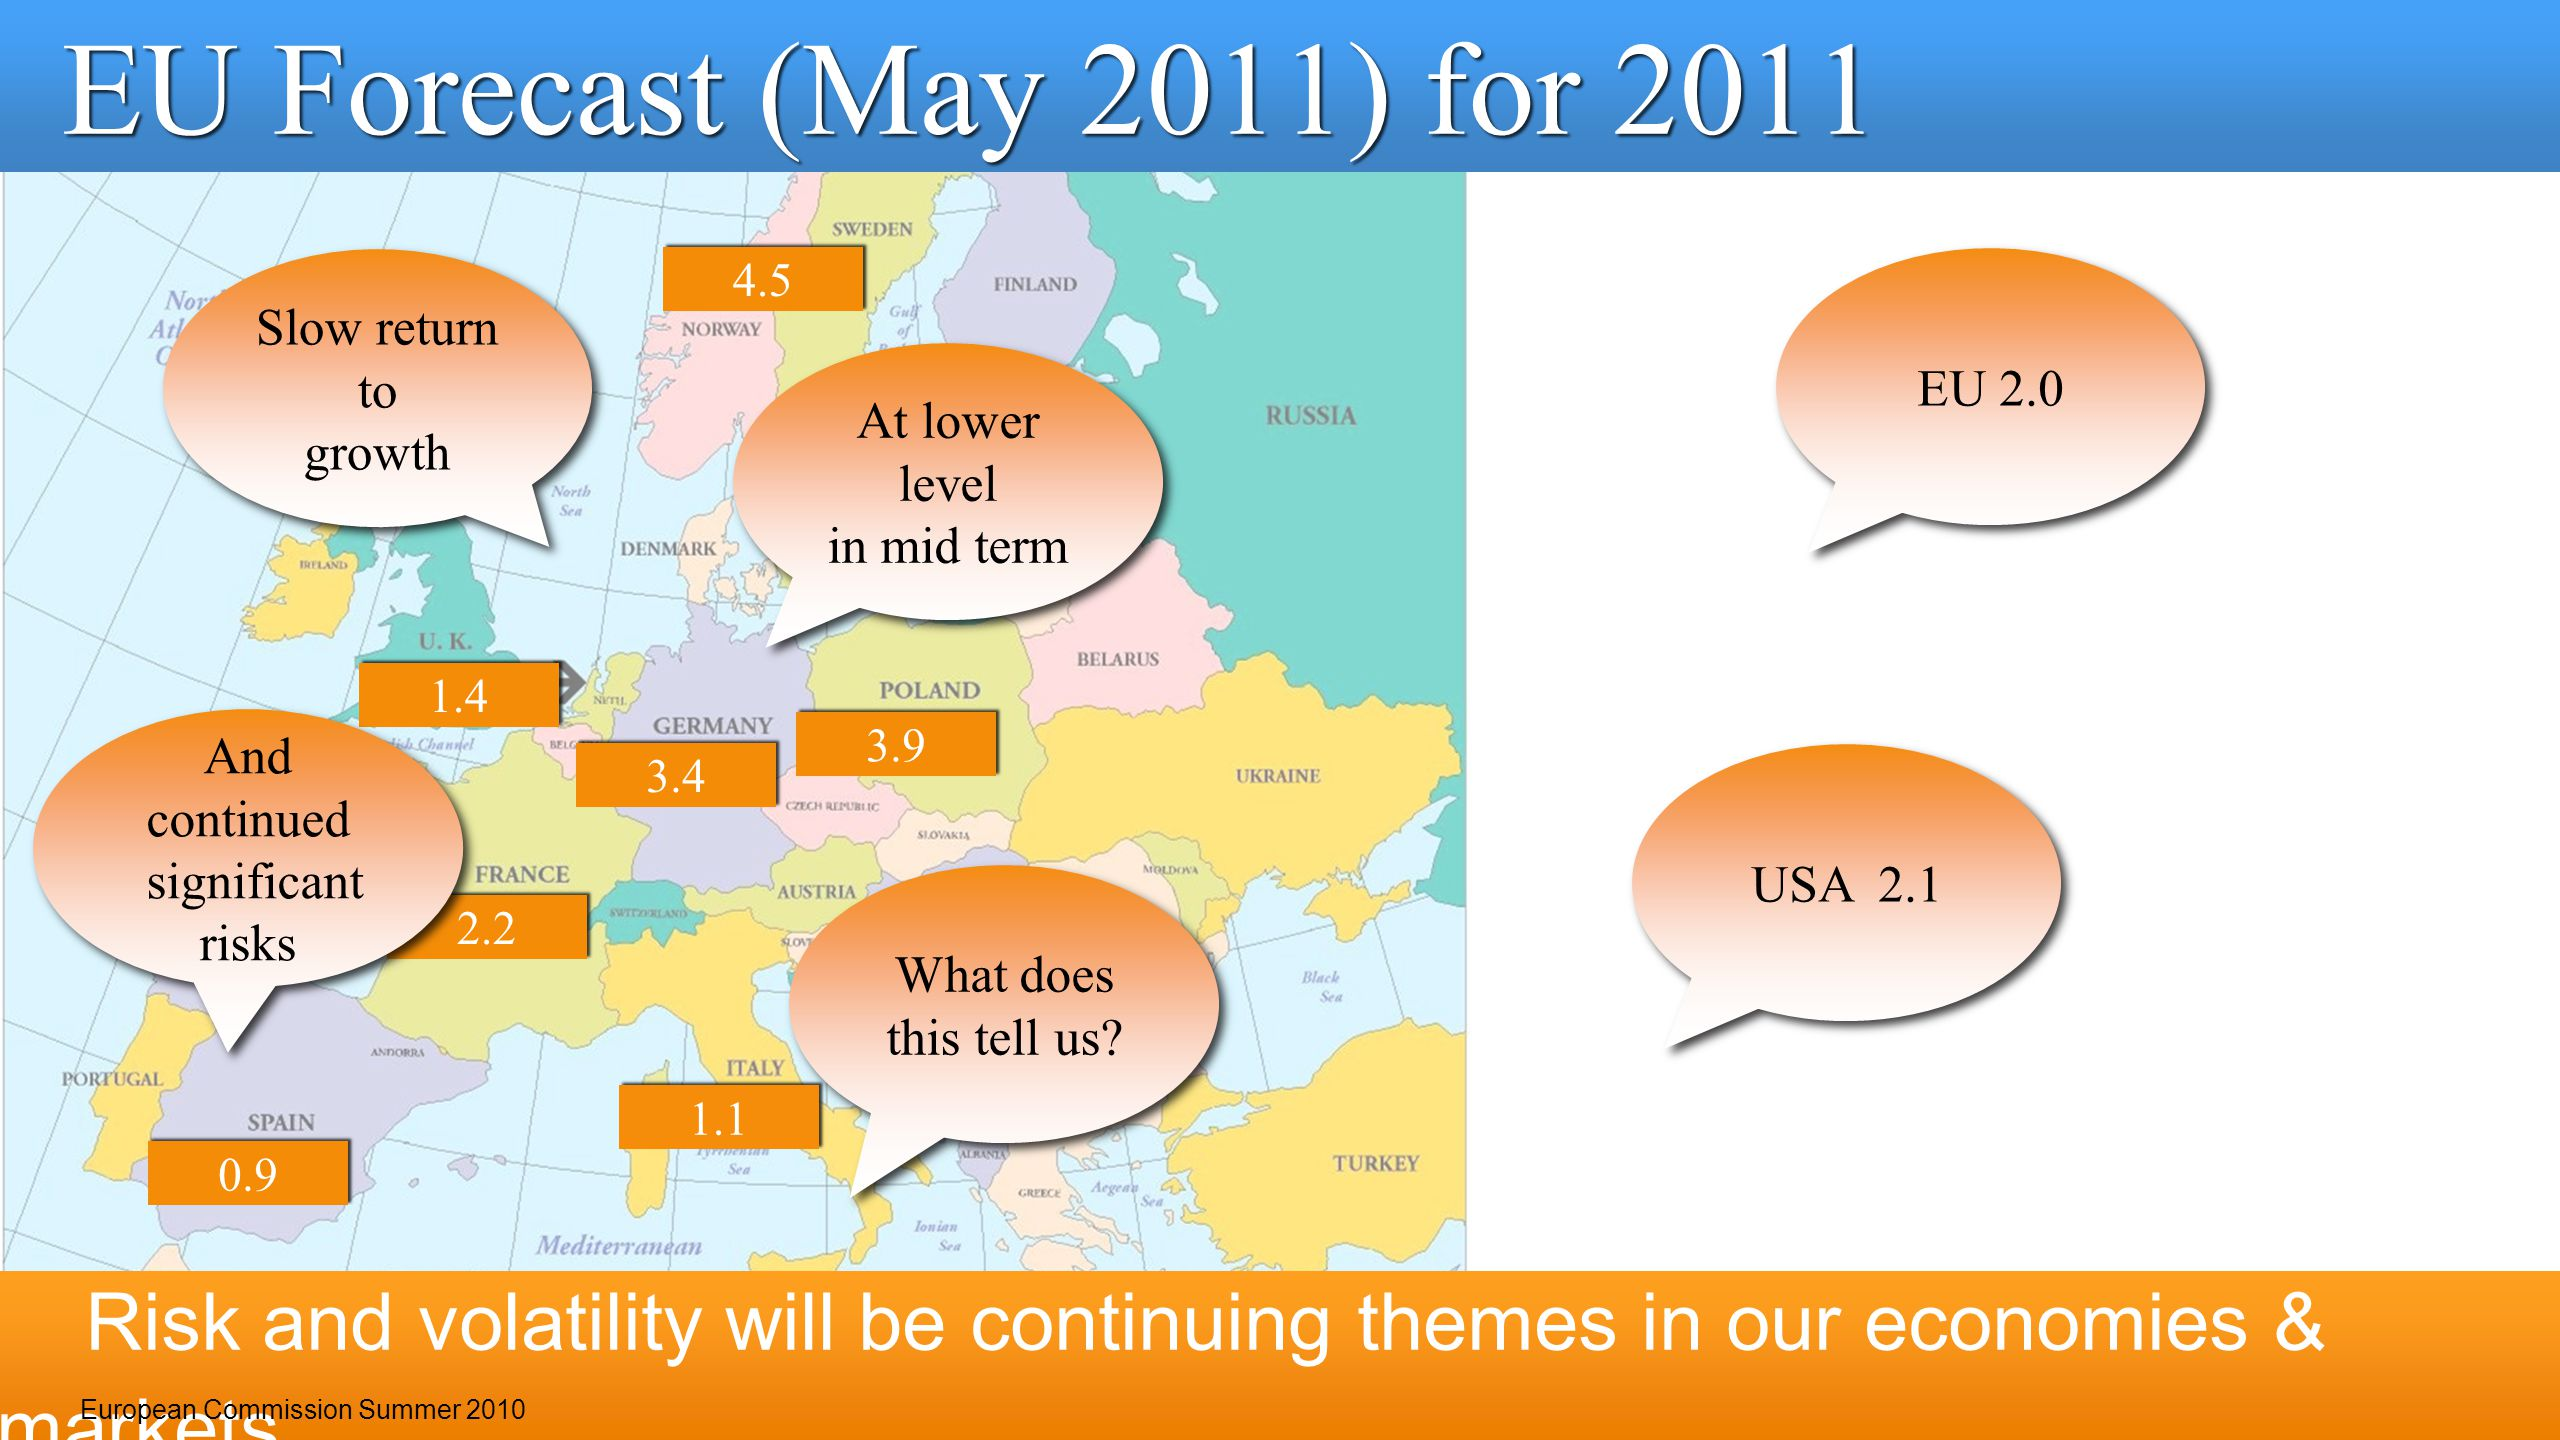 0.9 3.4 2.2 1.1 3.9 4.5 1.4 Risk and volatility will be continuing themes in our economies & markets 7 EU Forecast (May 2011) for 2011 European Commis